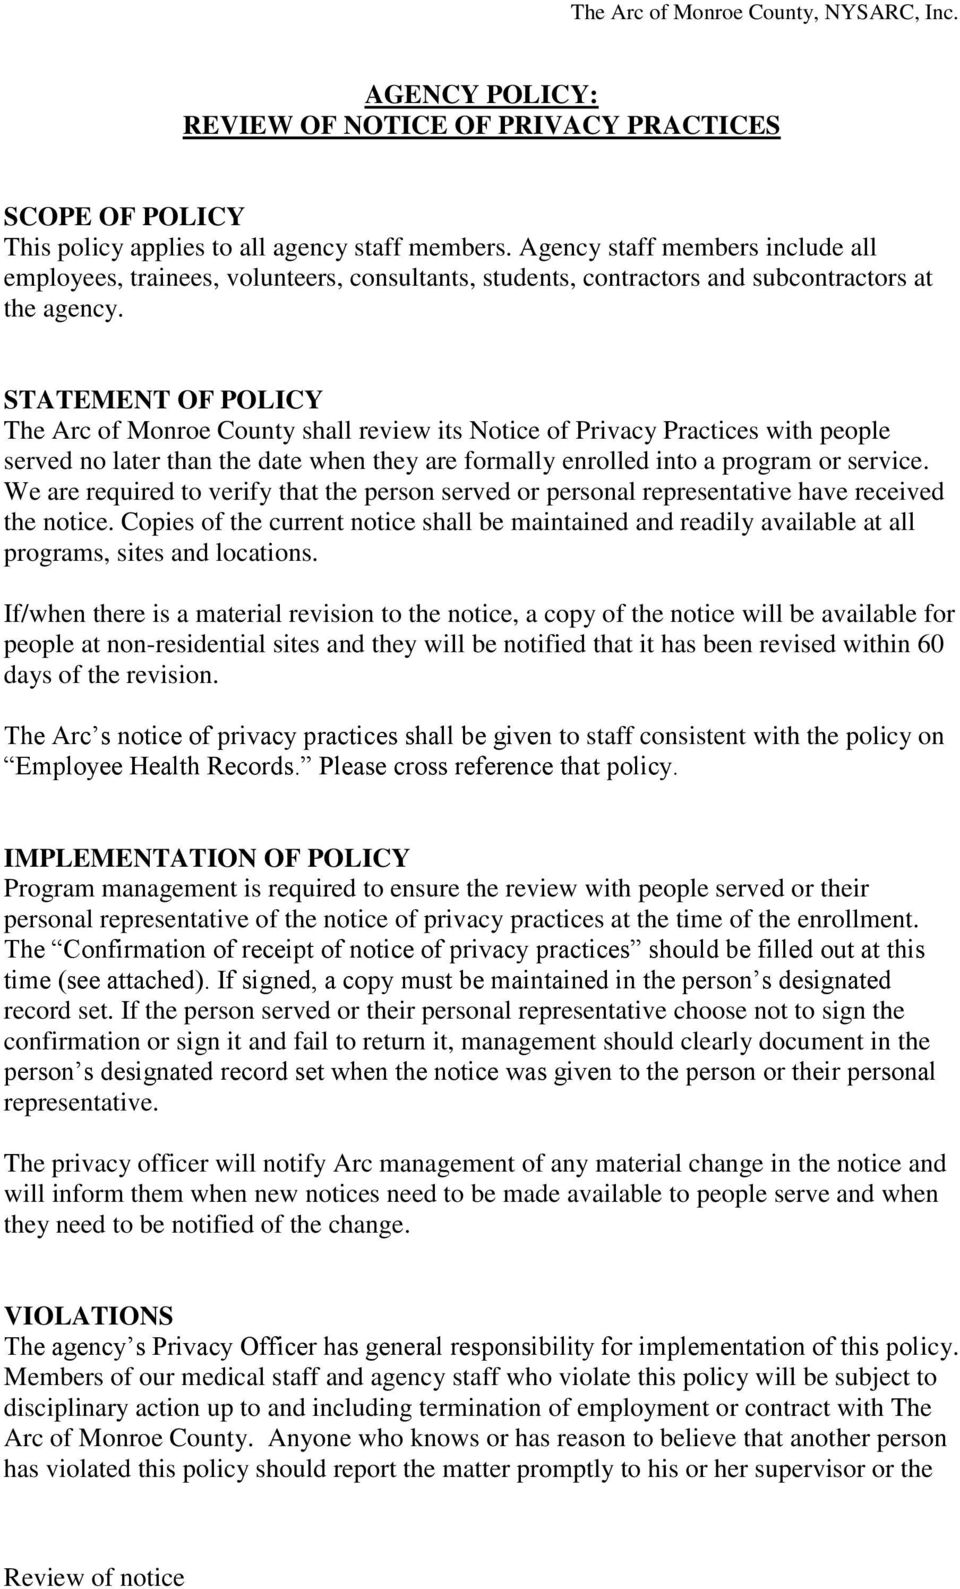 STATEMENT OF POLICY The Arc of Monroe County shall review its Notice of Privacy Practices with people served no later than the date when they are formally enrolled into a program or service.